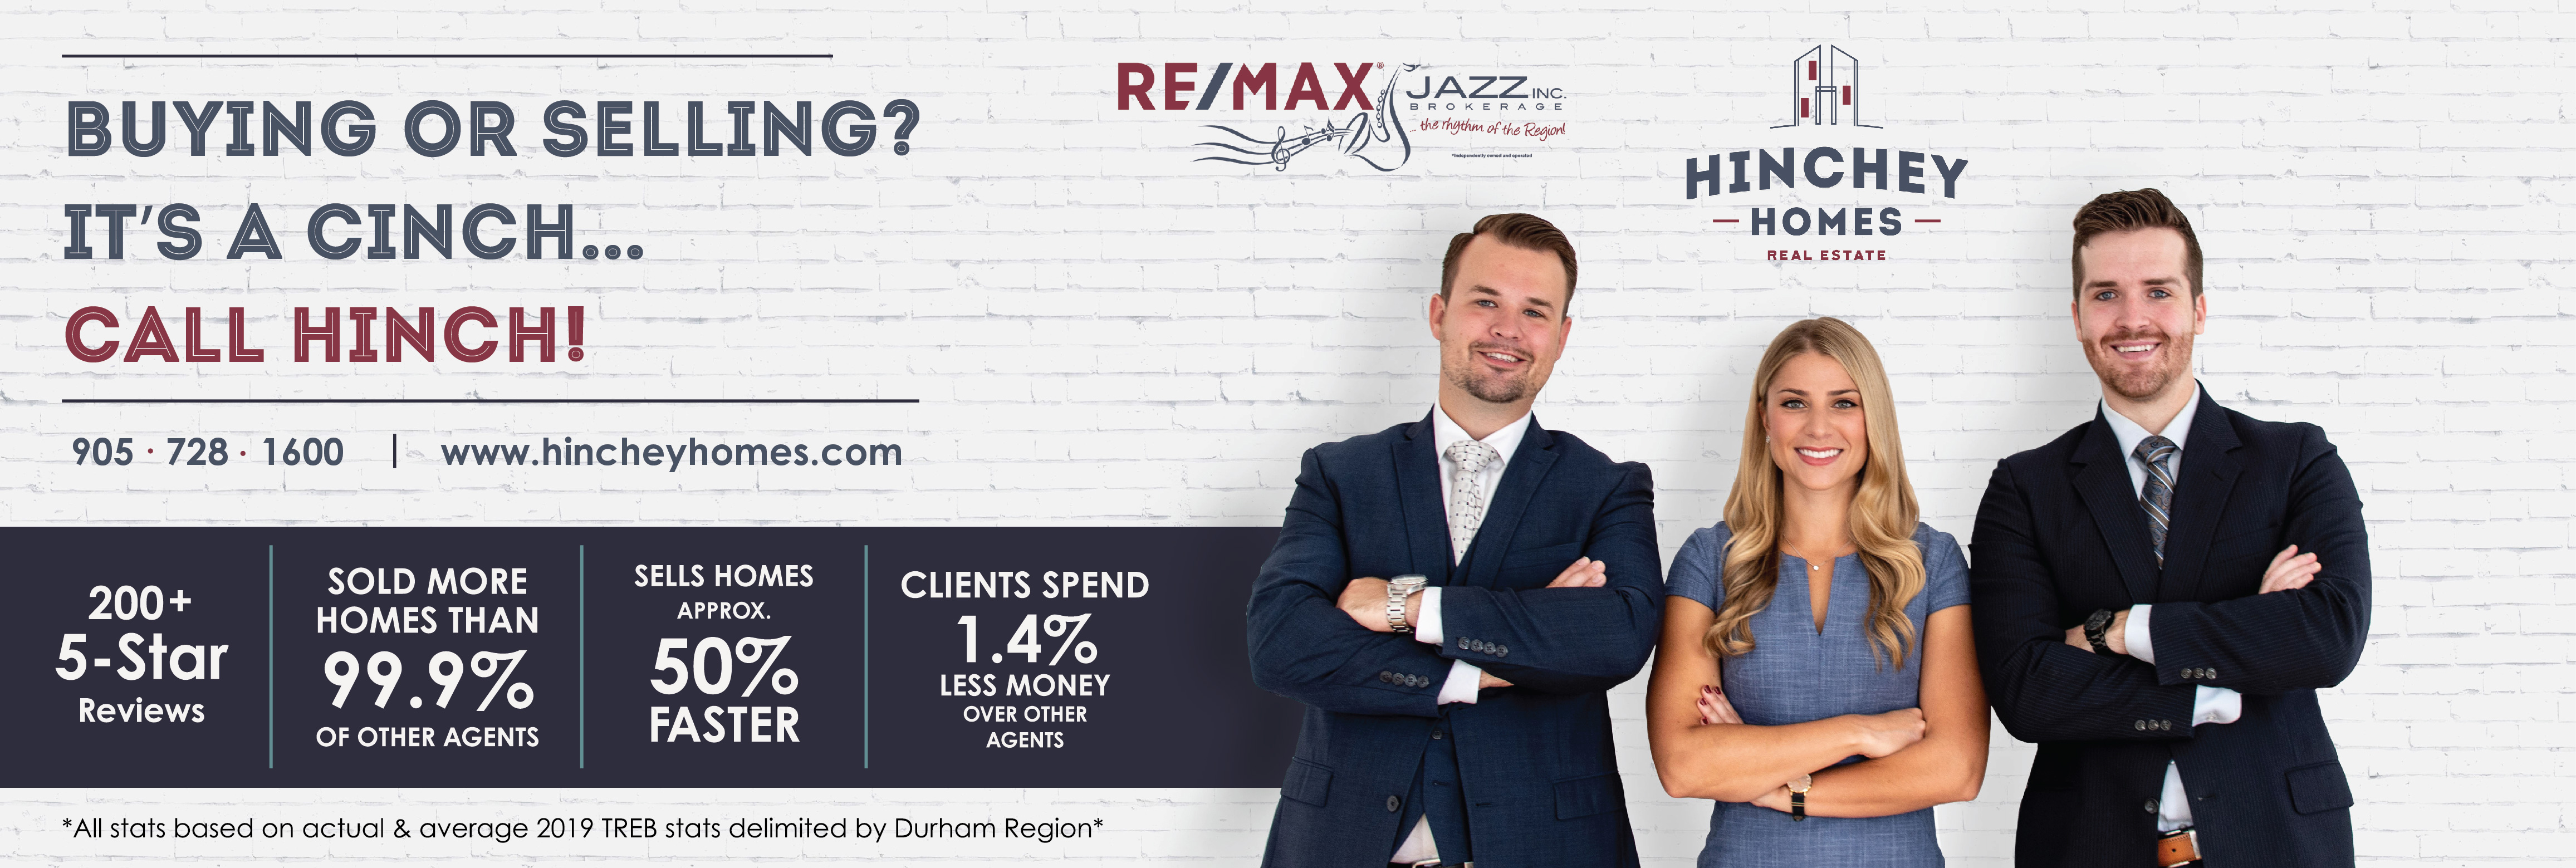 The Hinchey Homes Team - Re/Max Jazz reviews | 193 King Street East - Oshawa ON